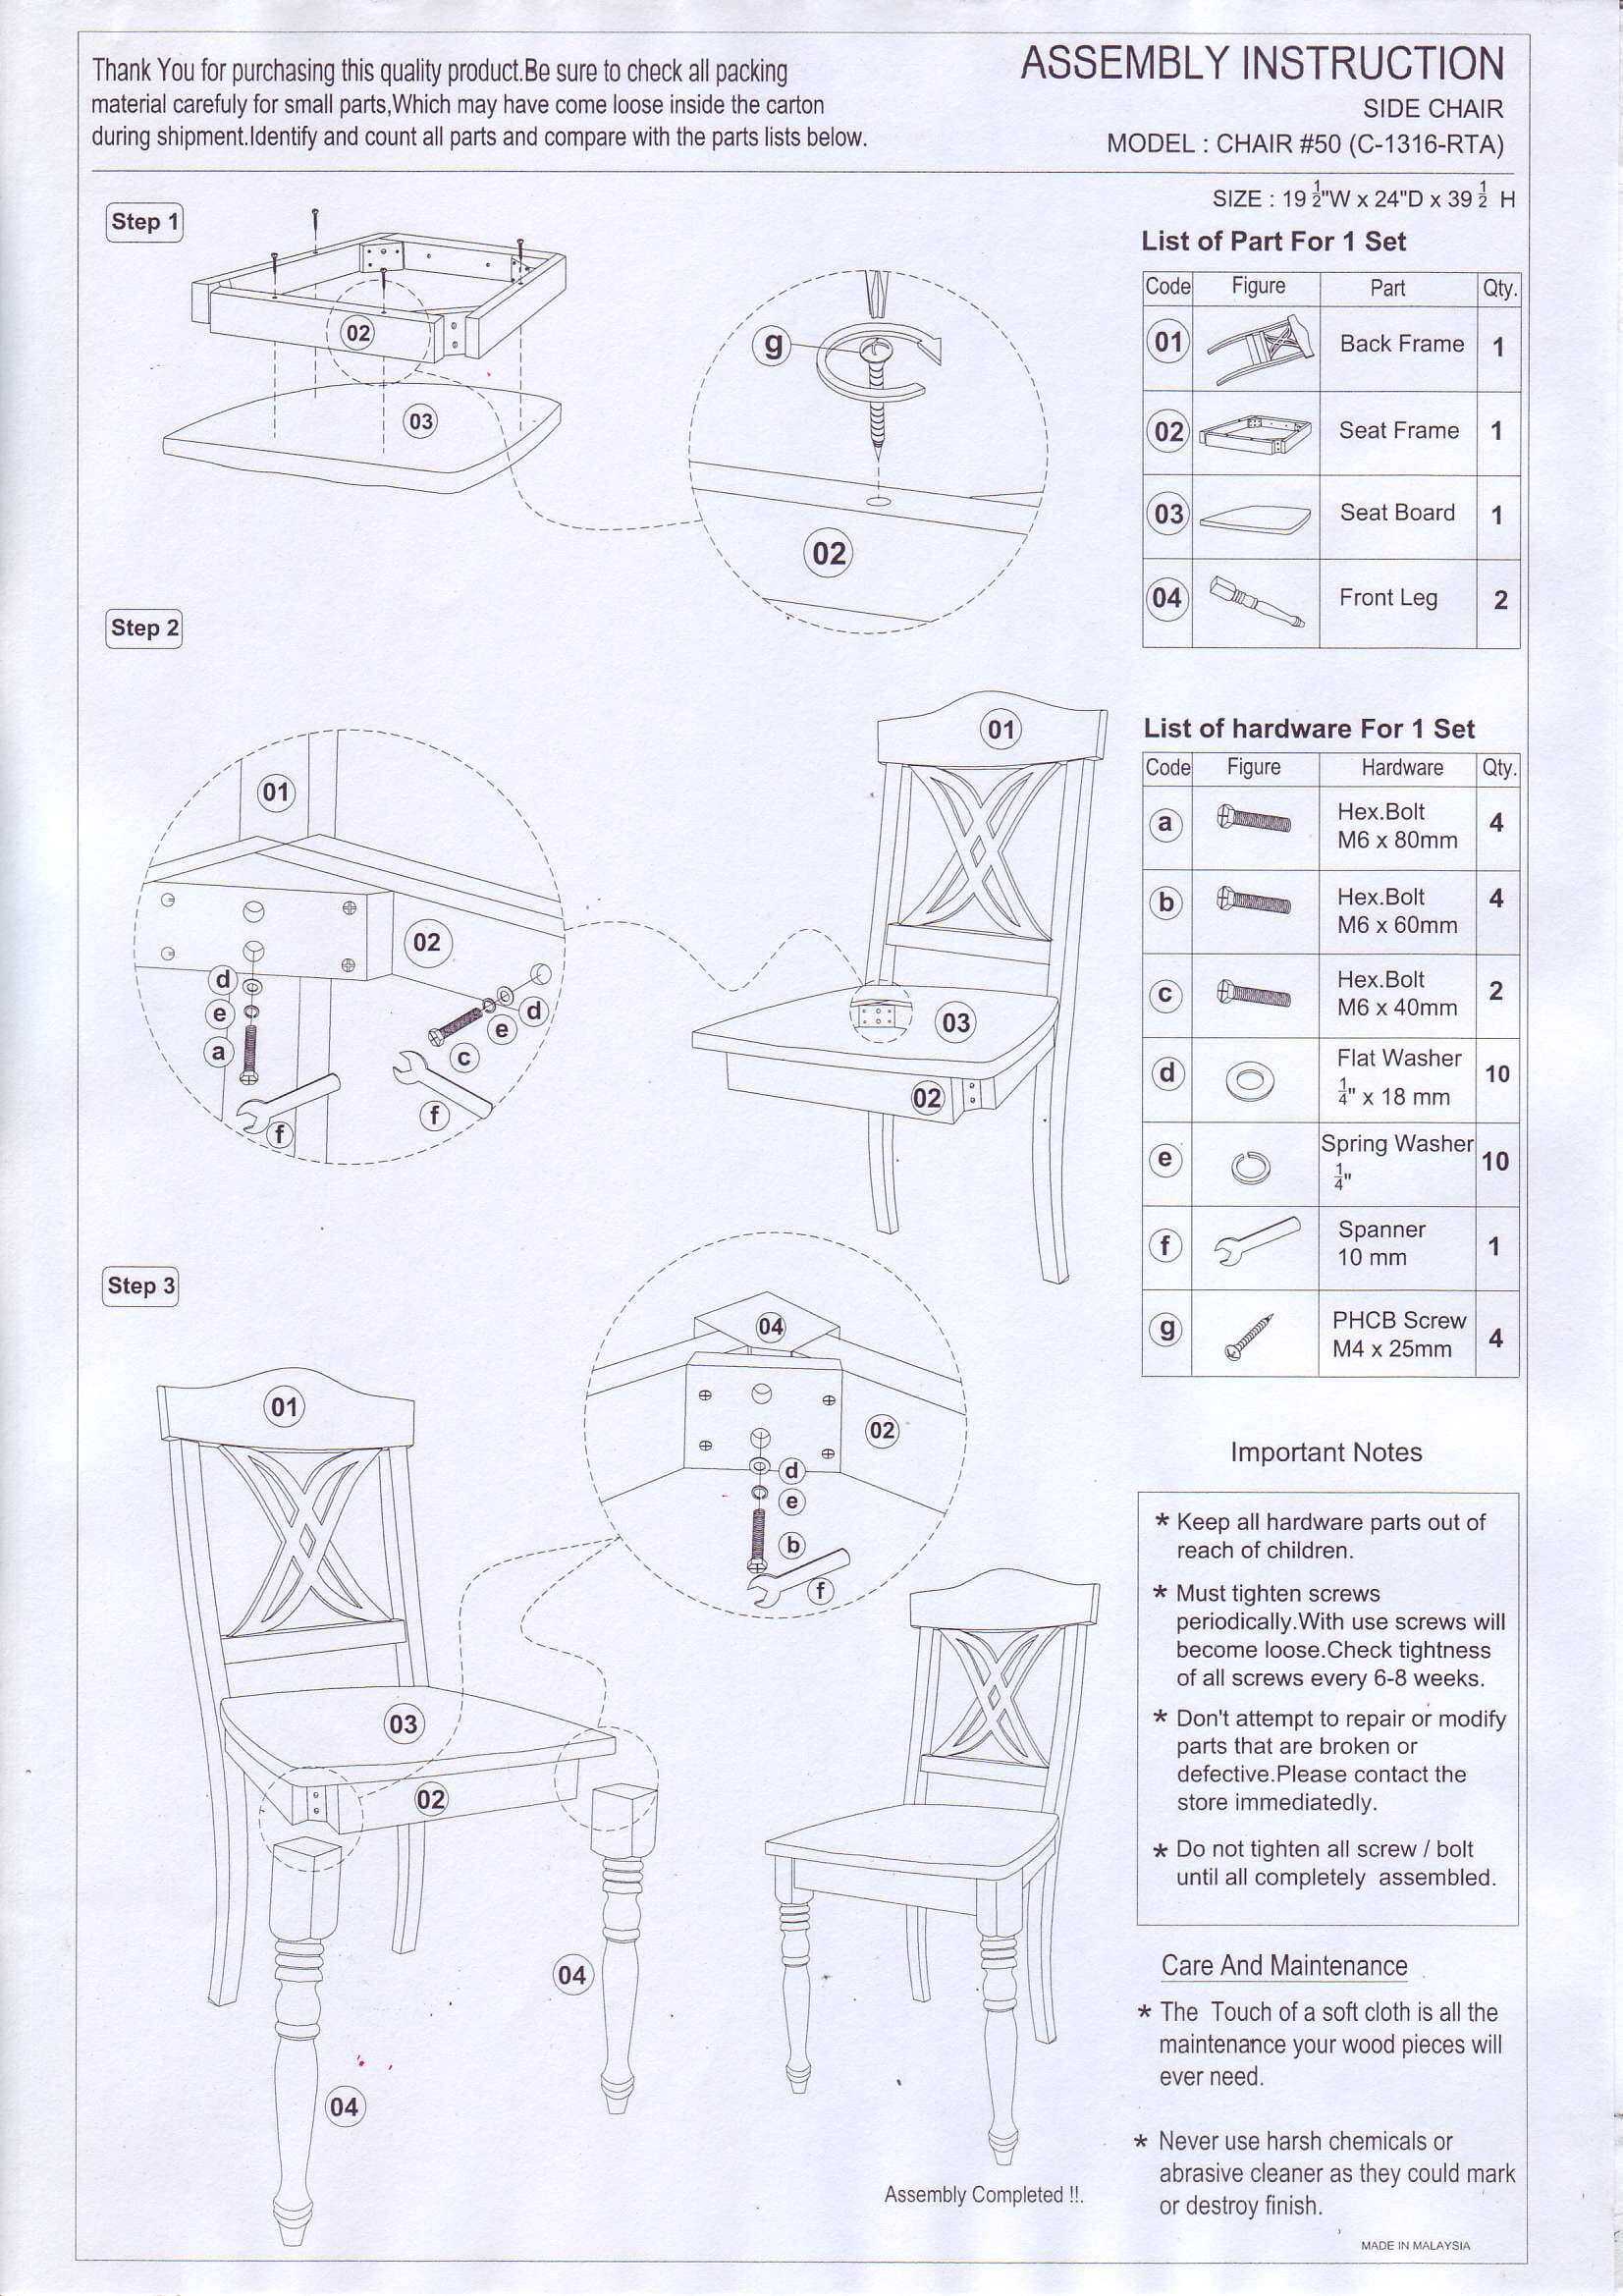 AI Chair#50 Assembly instruction-1.jpg